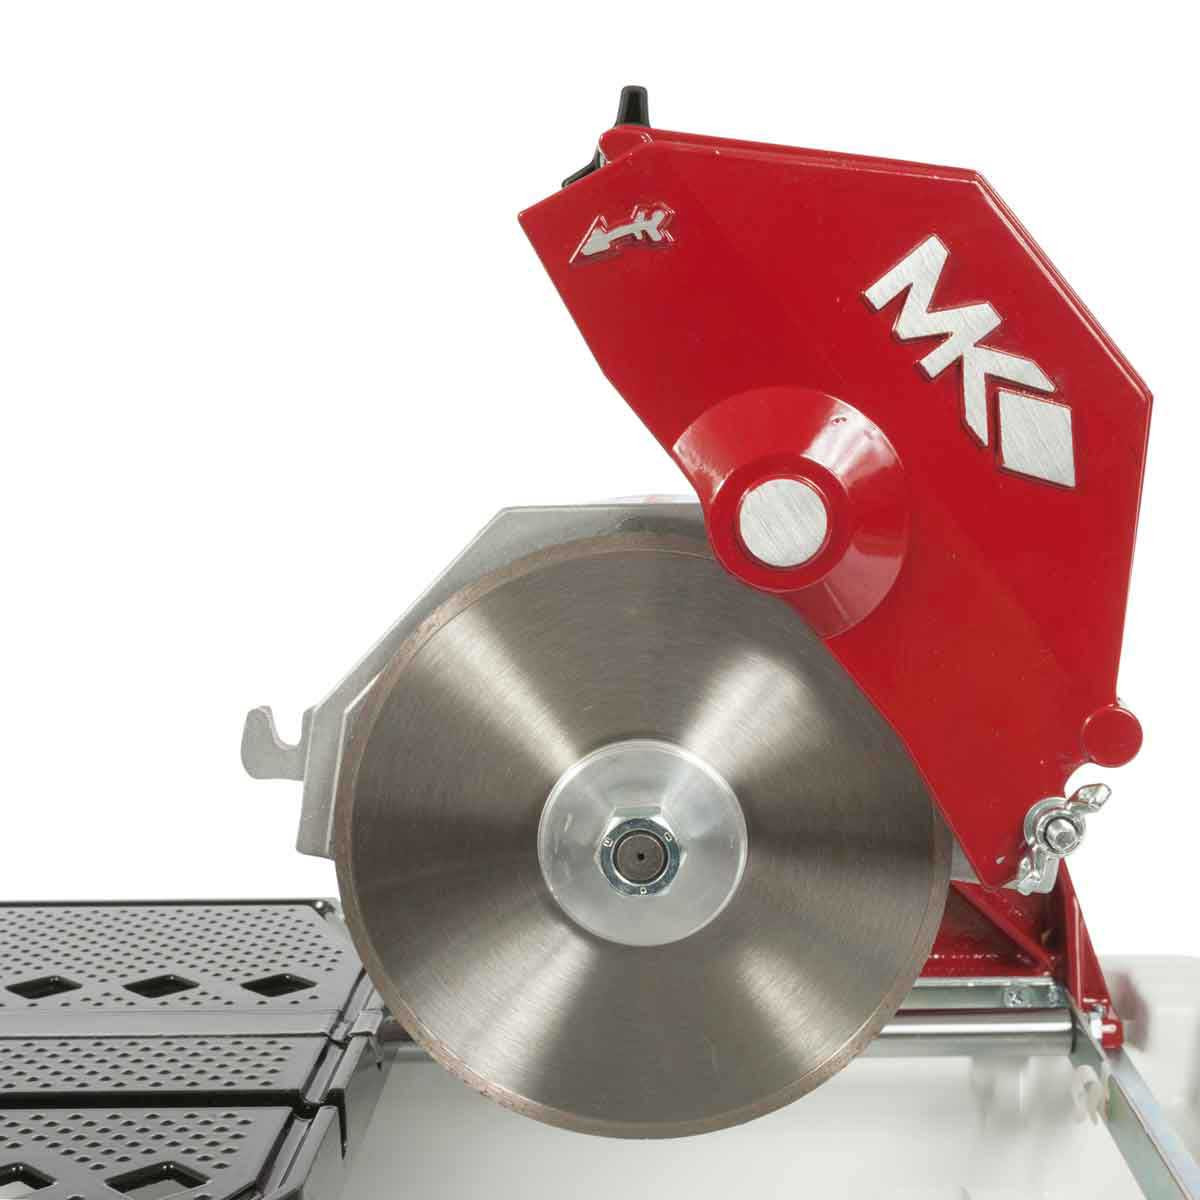 MK-377EXP Tile Saw 7 inch blade cover